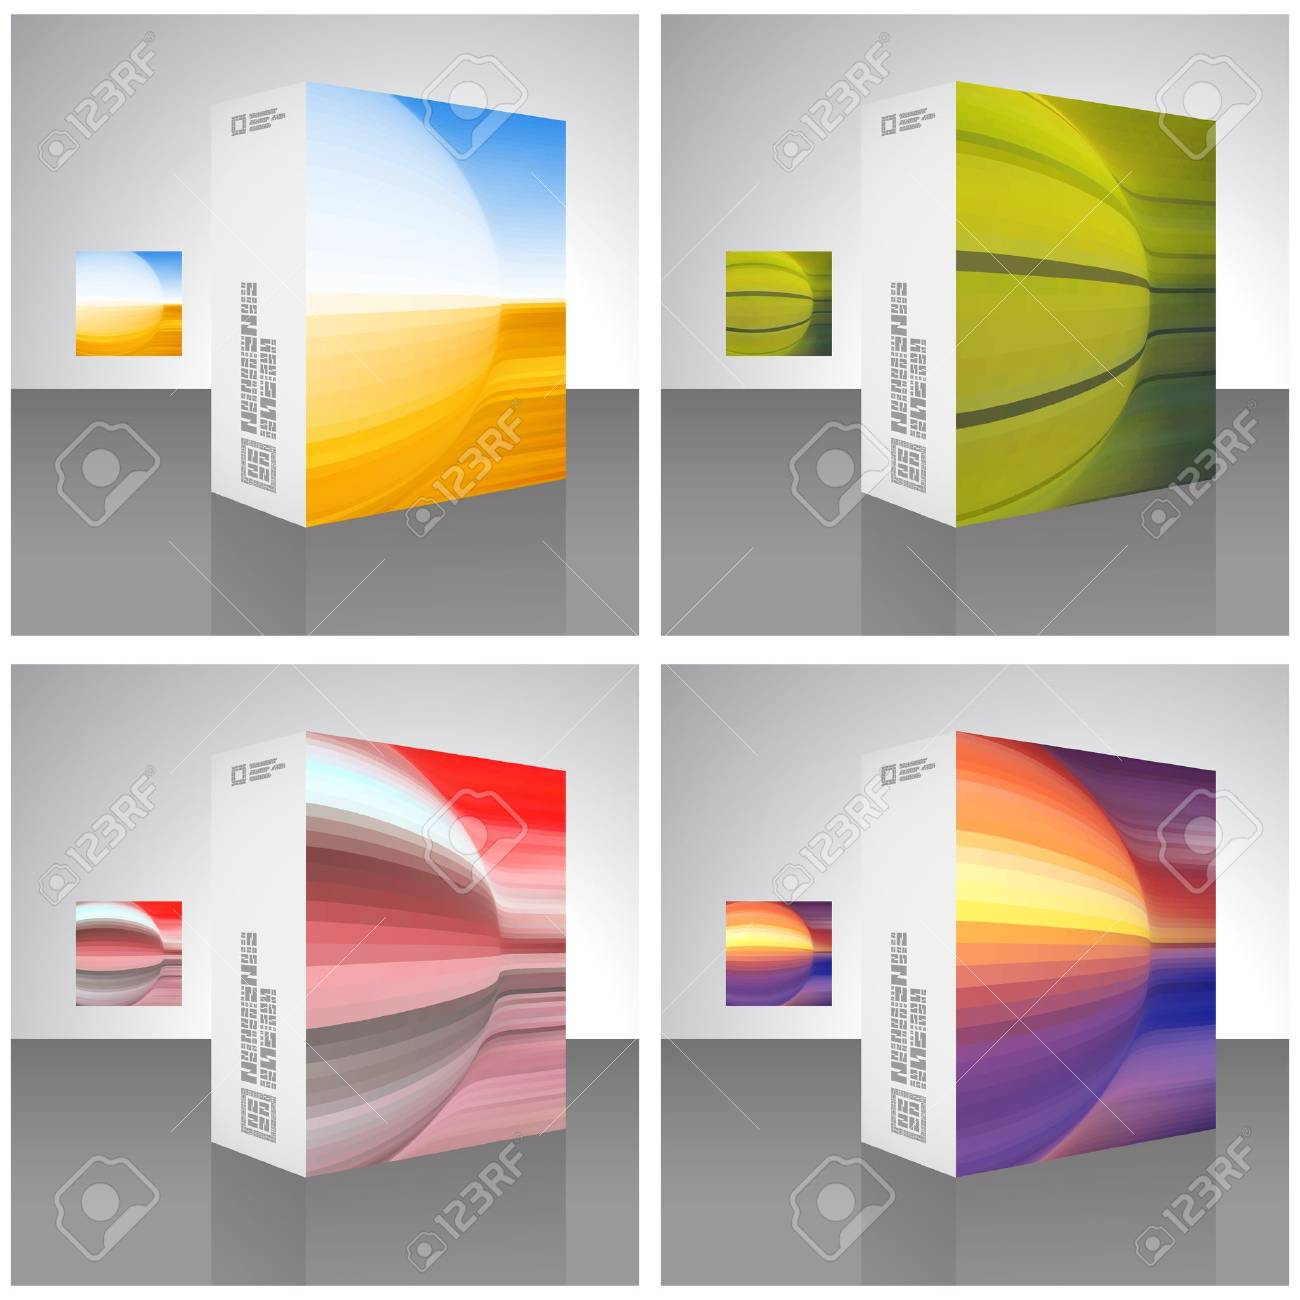 Packaging box Stock Vector - 16770978